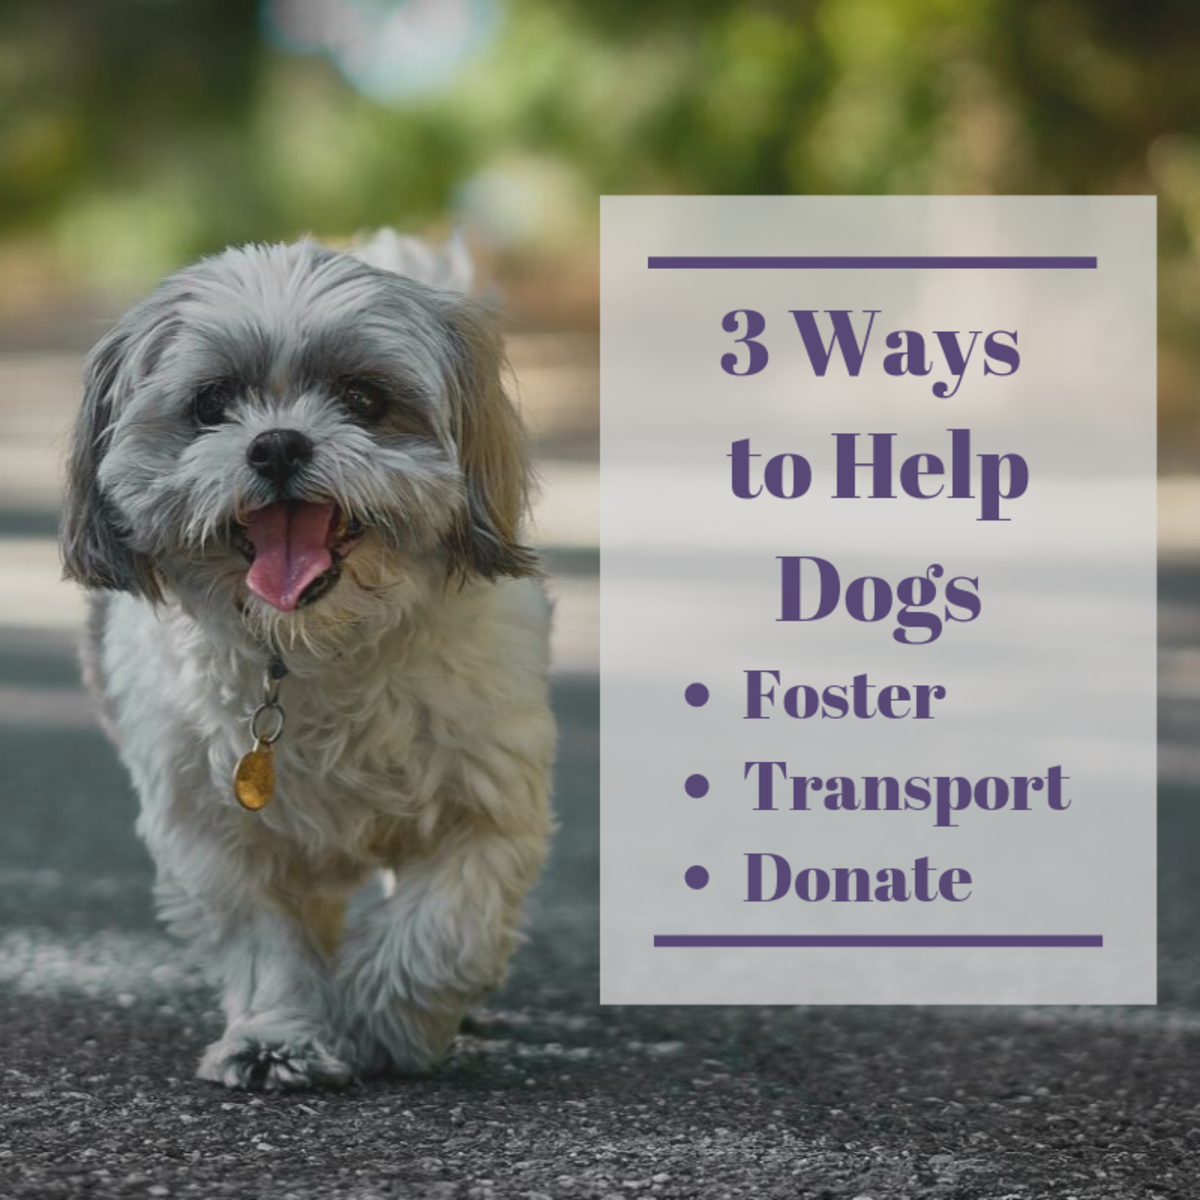 3 Ways to Help Rescue Dogs